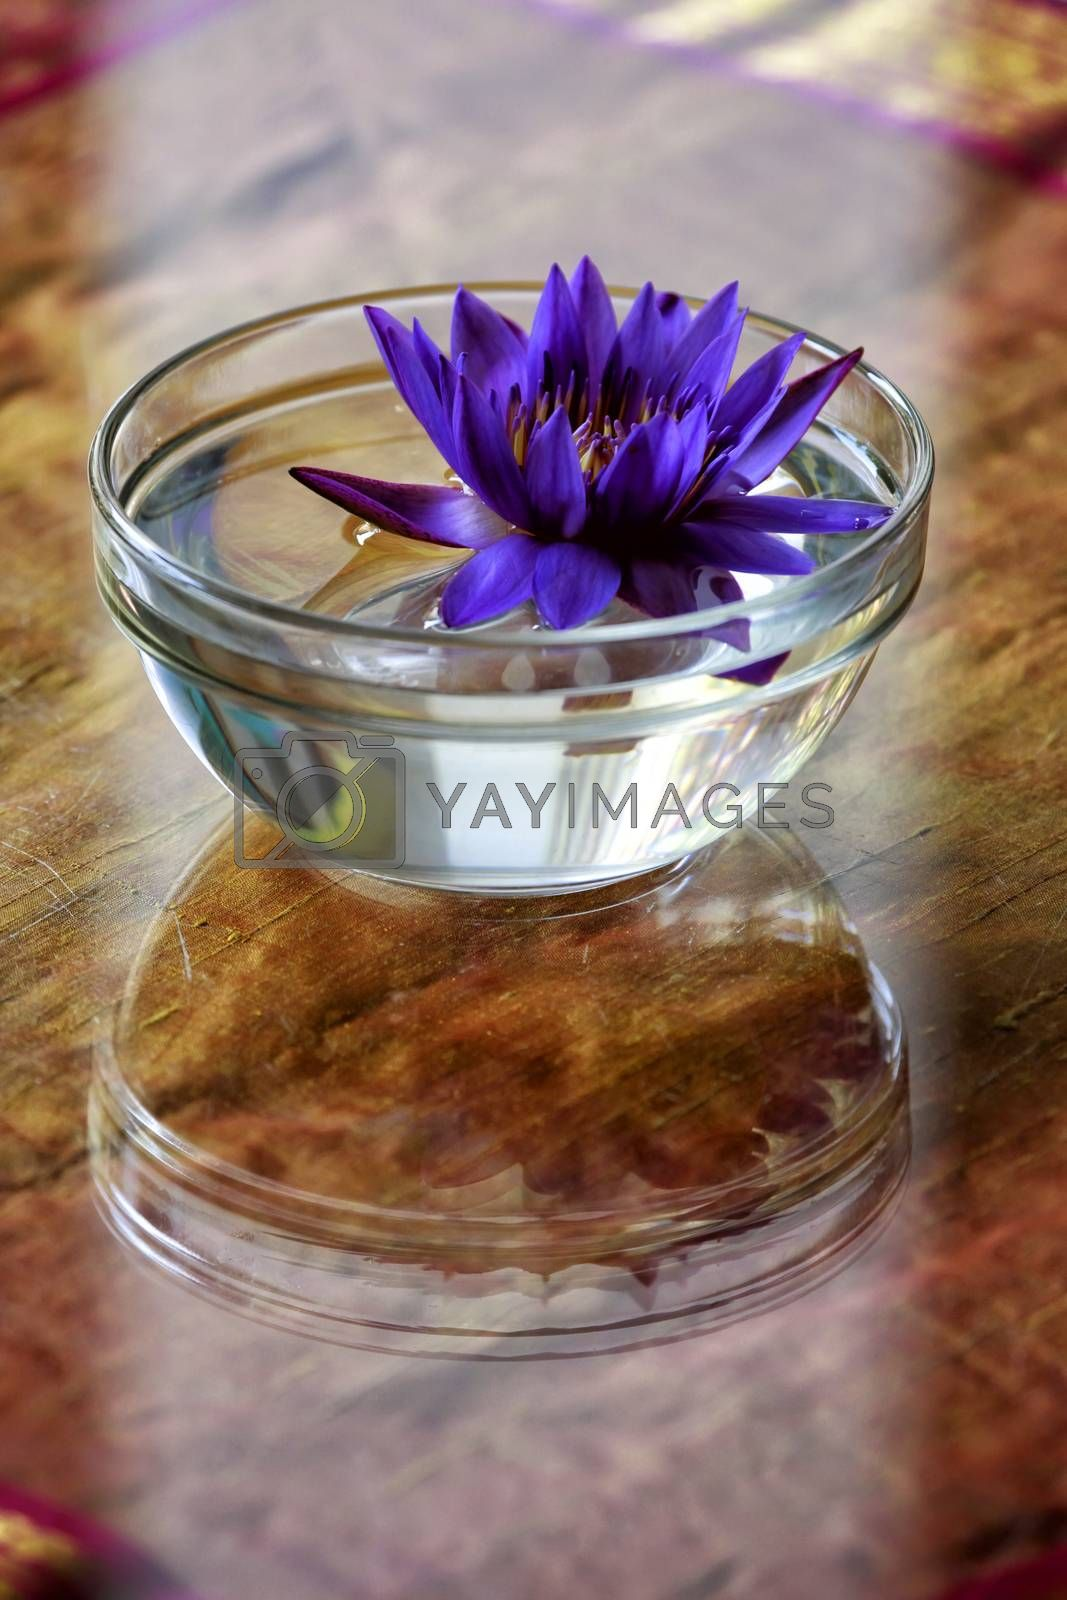 Royalty free image of Lotus flowers in a glass of water used to decorate the table by friday